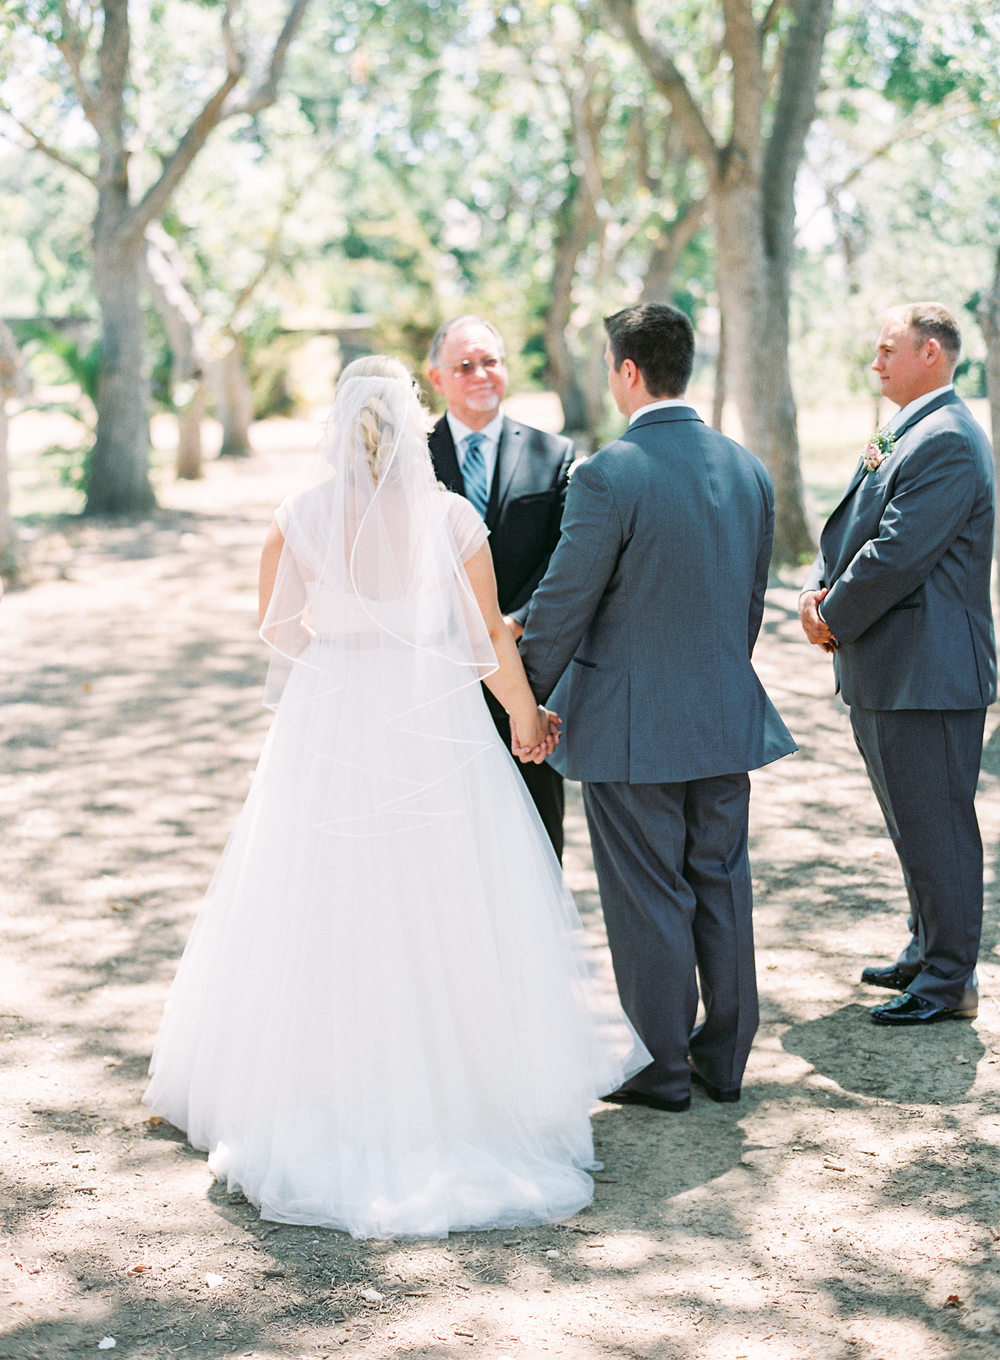 southern-inspired-wedding-at-ravenswood-historic-site-008-6.jpg